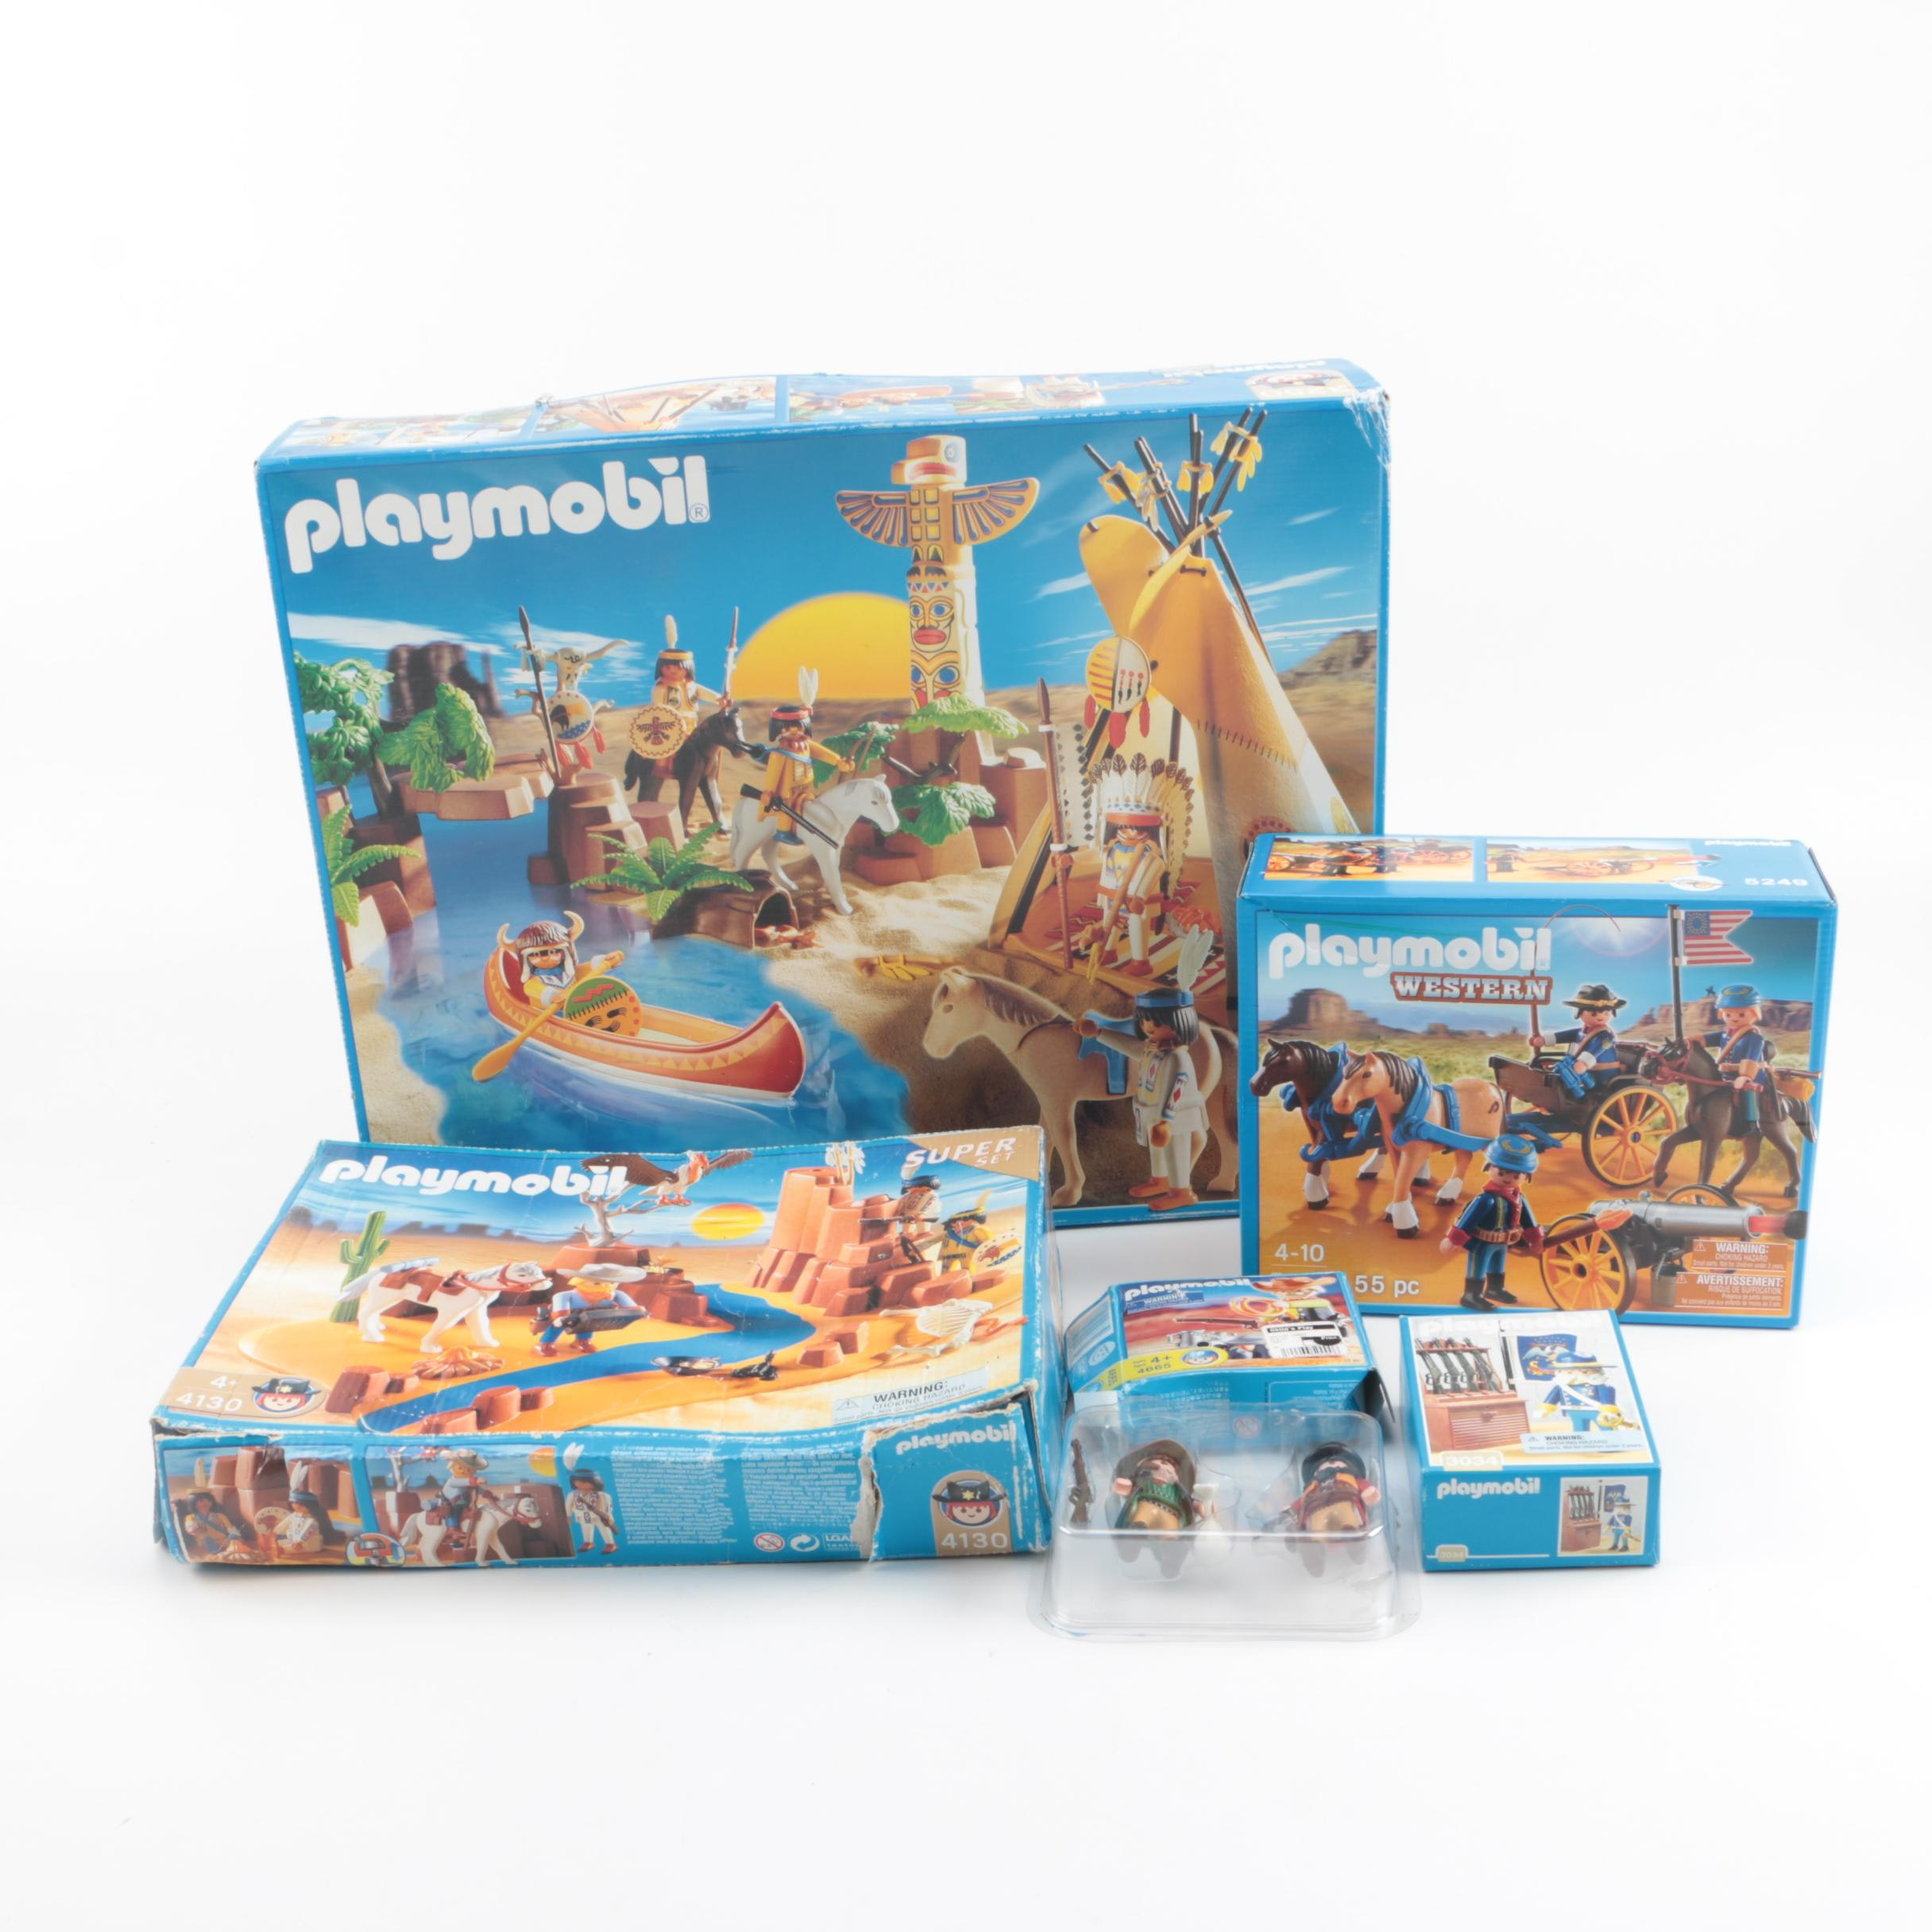 "Playmobil Western Themed Sets Including ""Western Super Set"""